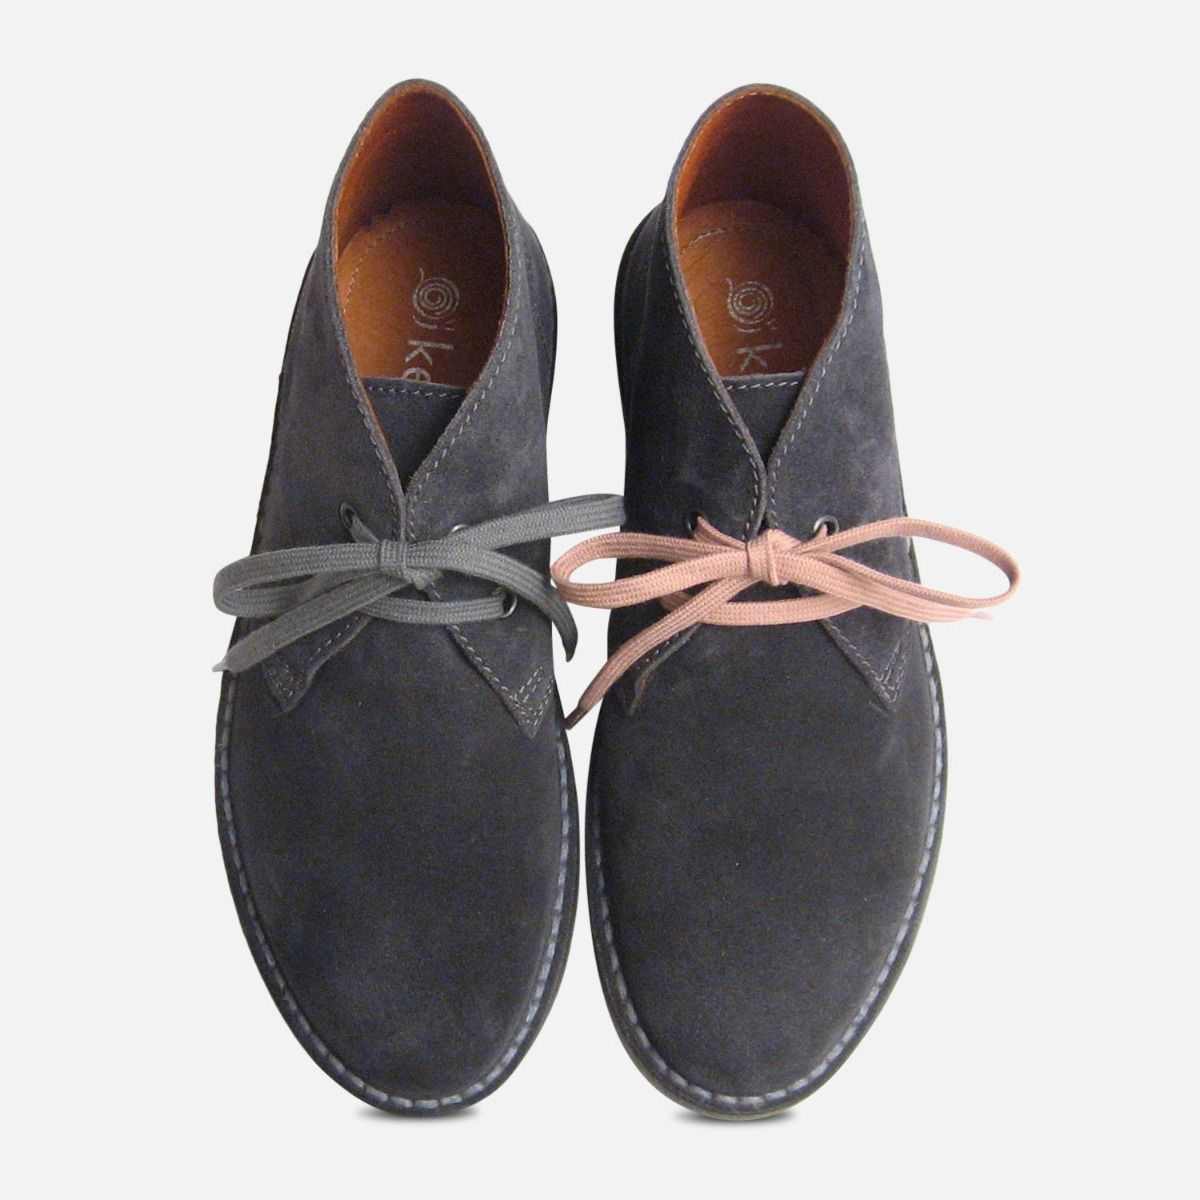 suede shoes for ladies